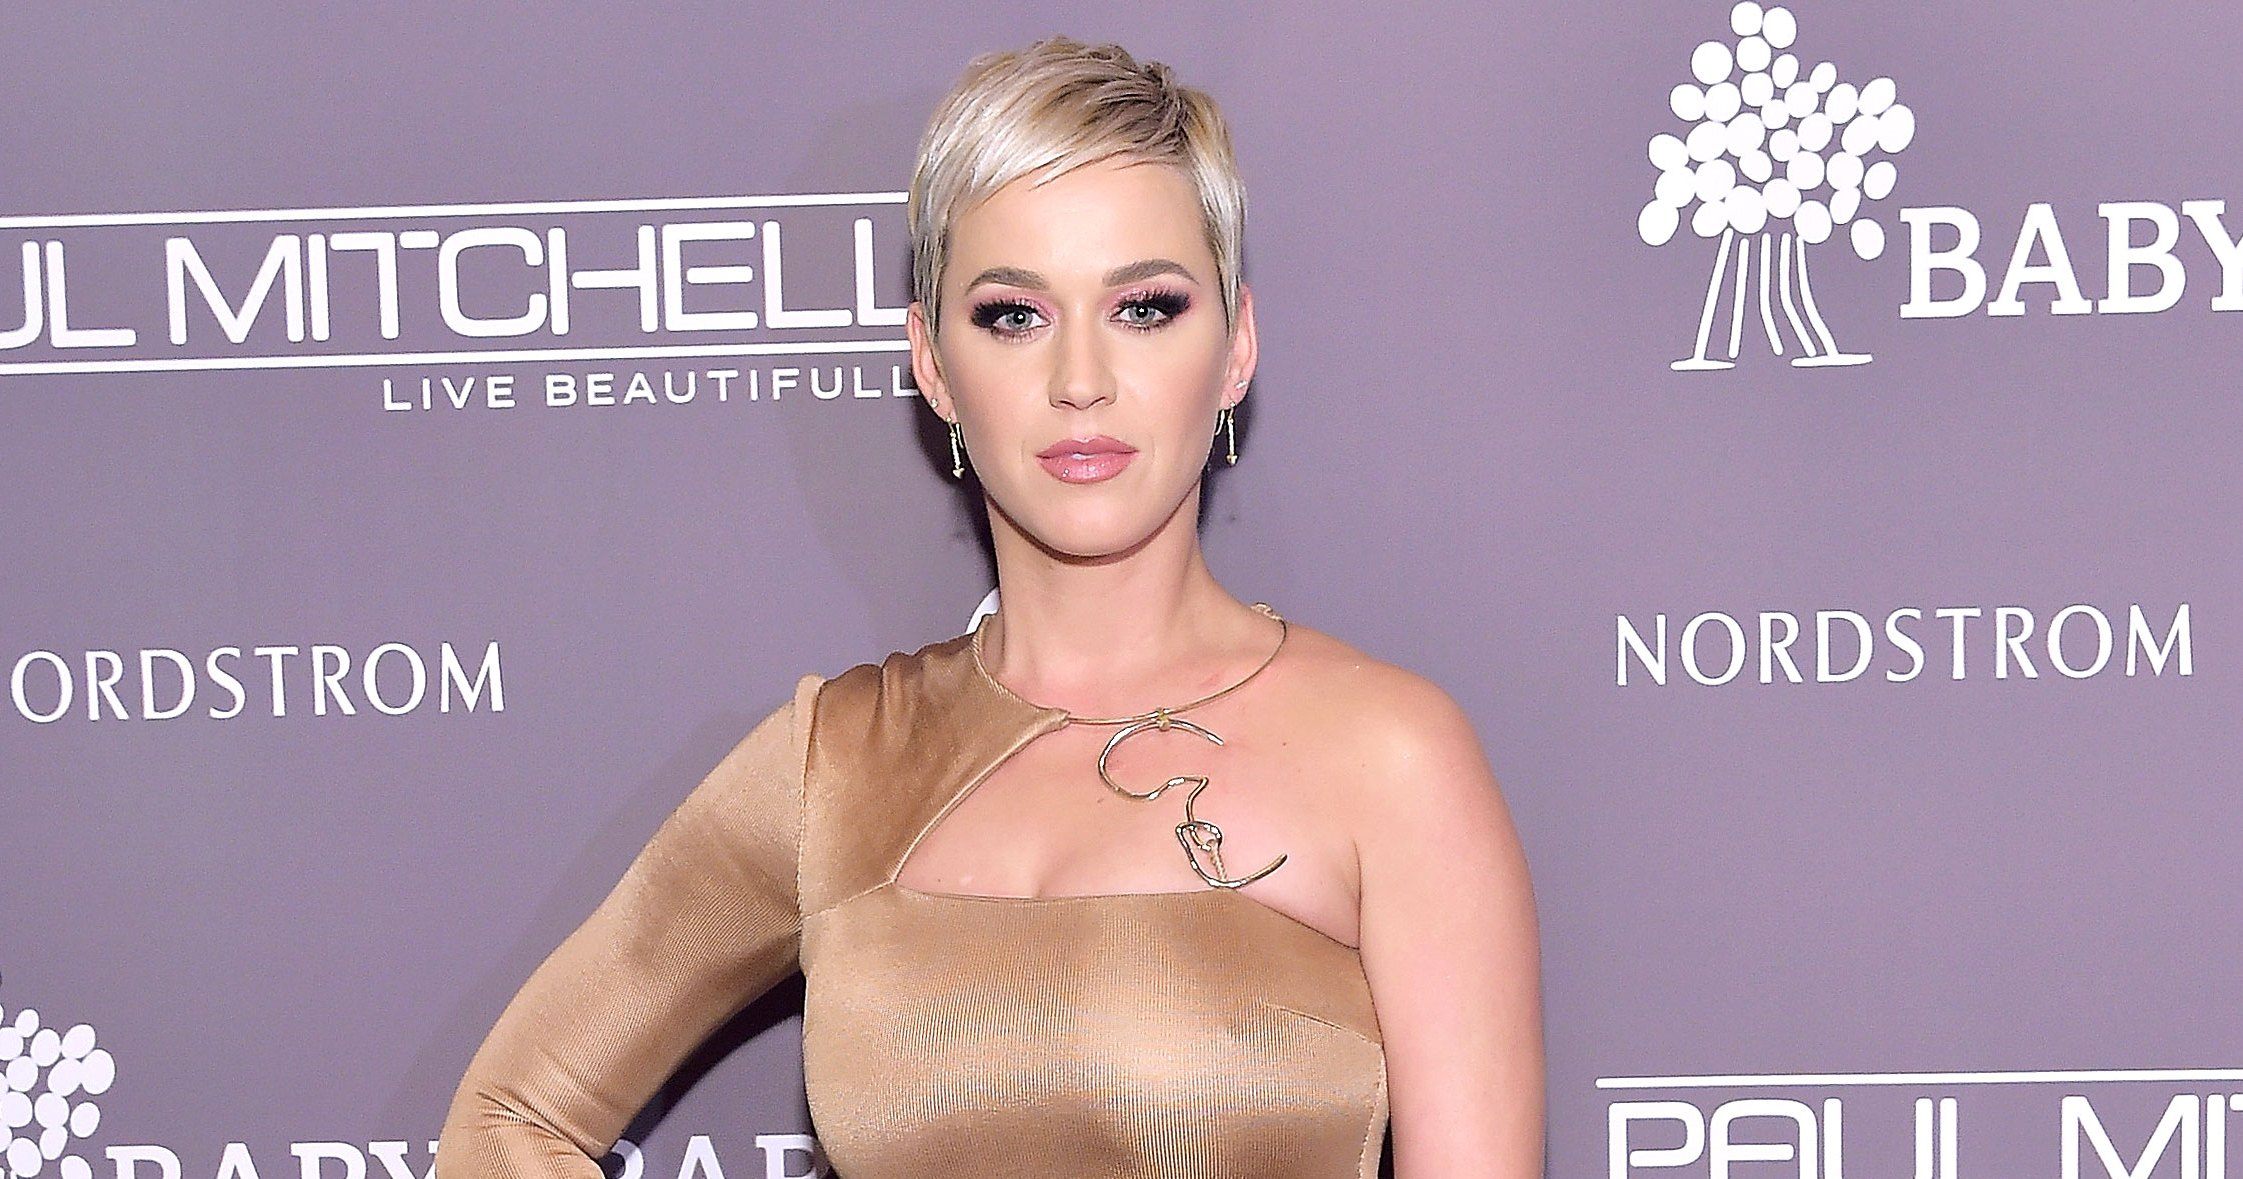 Holiday Gift Idea: The Jewelry Line Katy Perry and More Are Loving